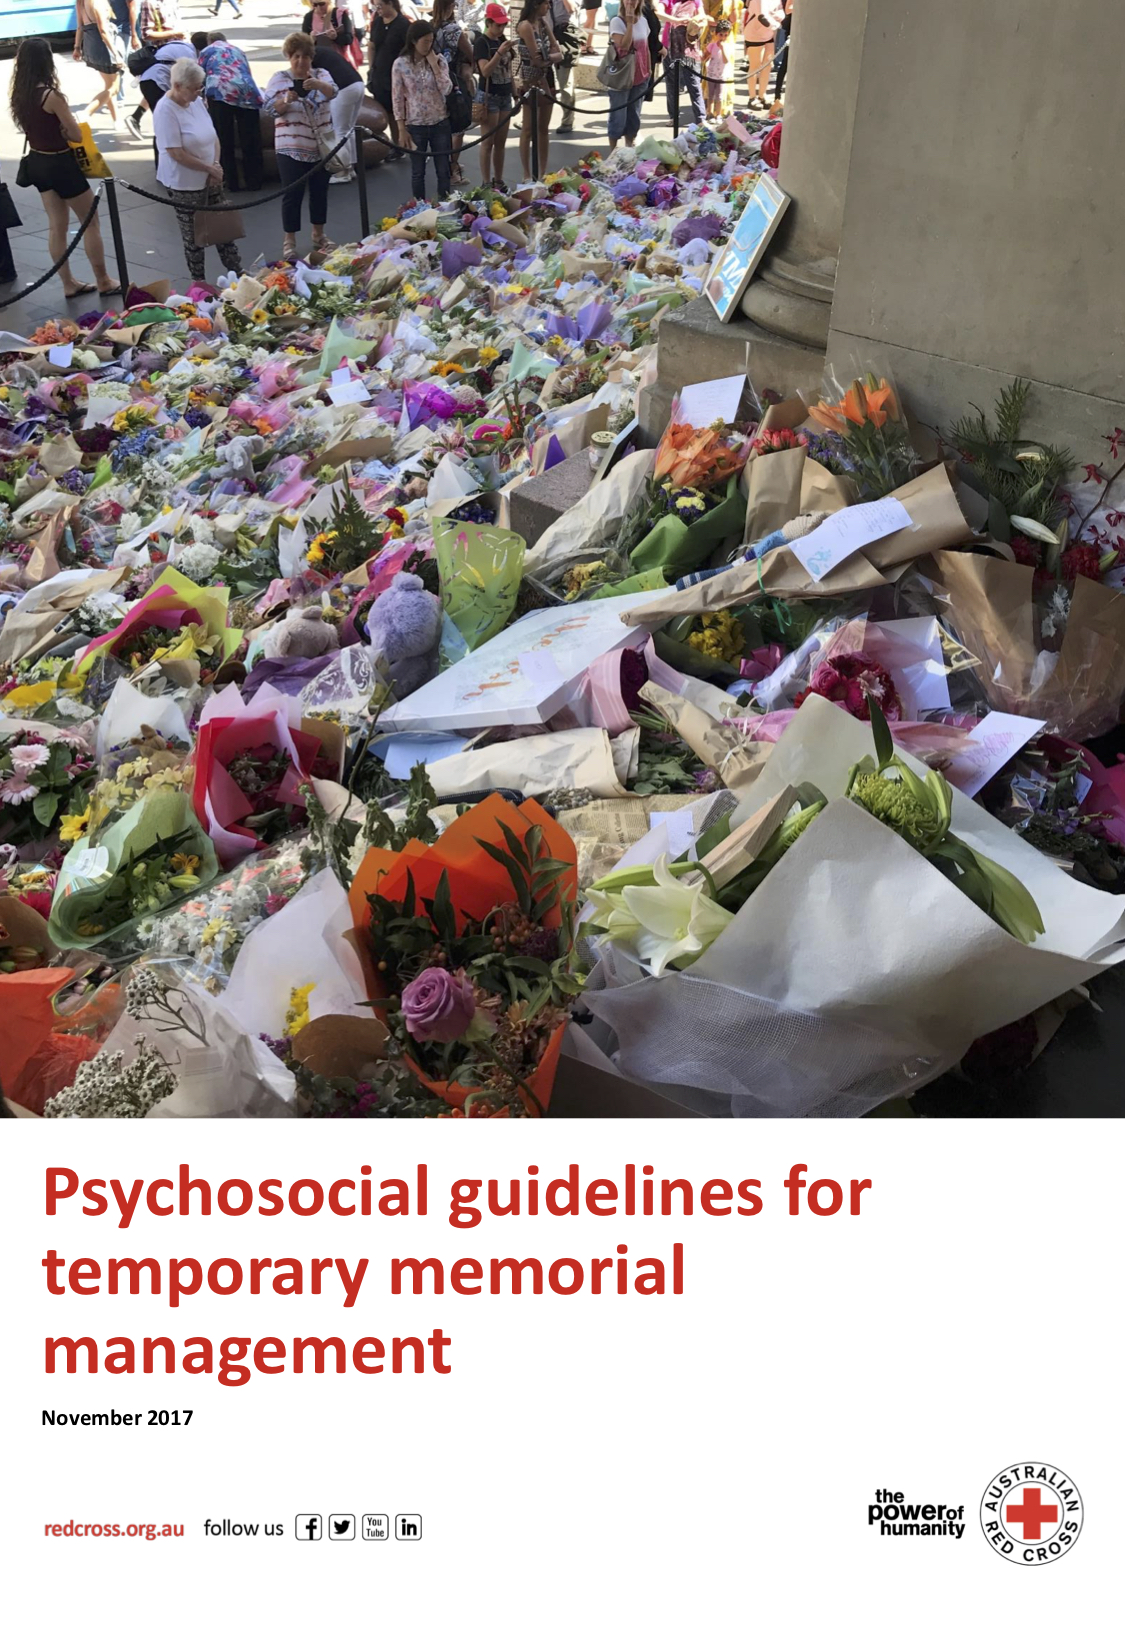 Memorial Management - A guide for logistics of managing a temporary memorial, published by the Australian Red Cross.